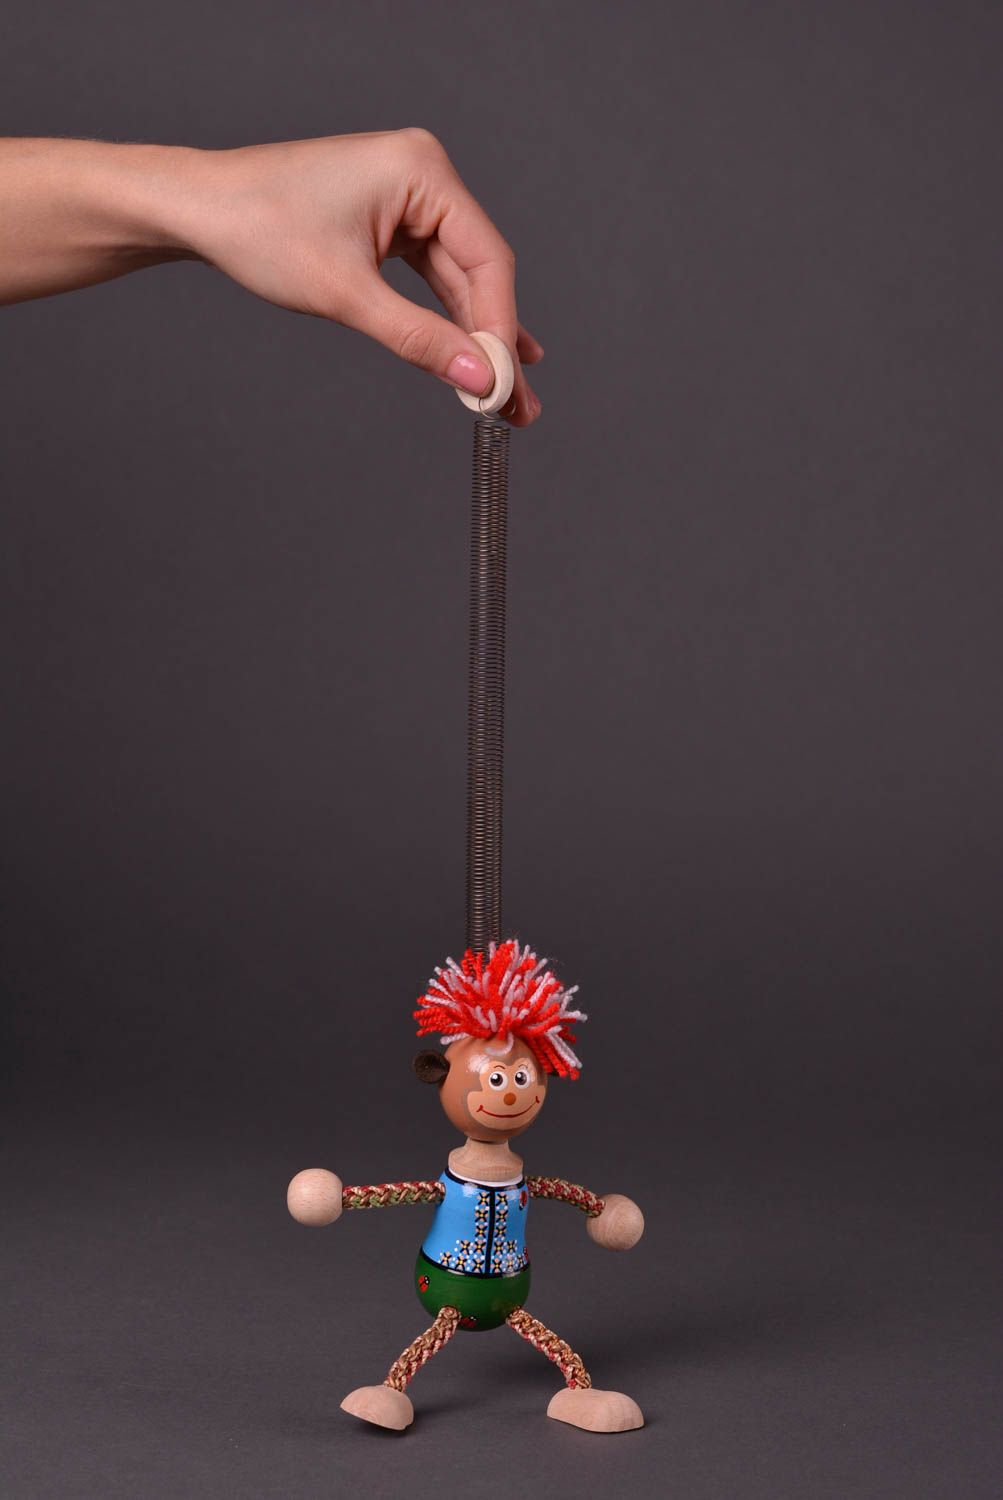 Handmade wooden toy unusual designer accessories beautiful lovely doll photo 2